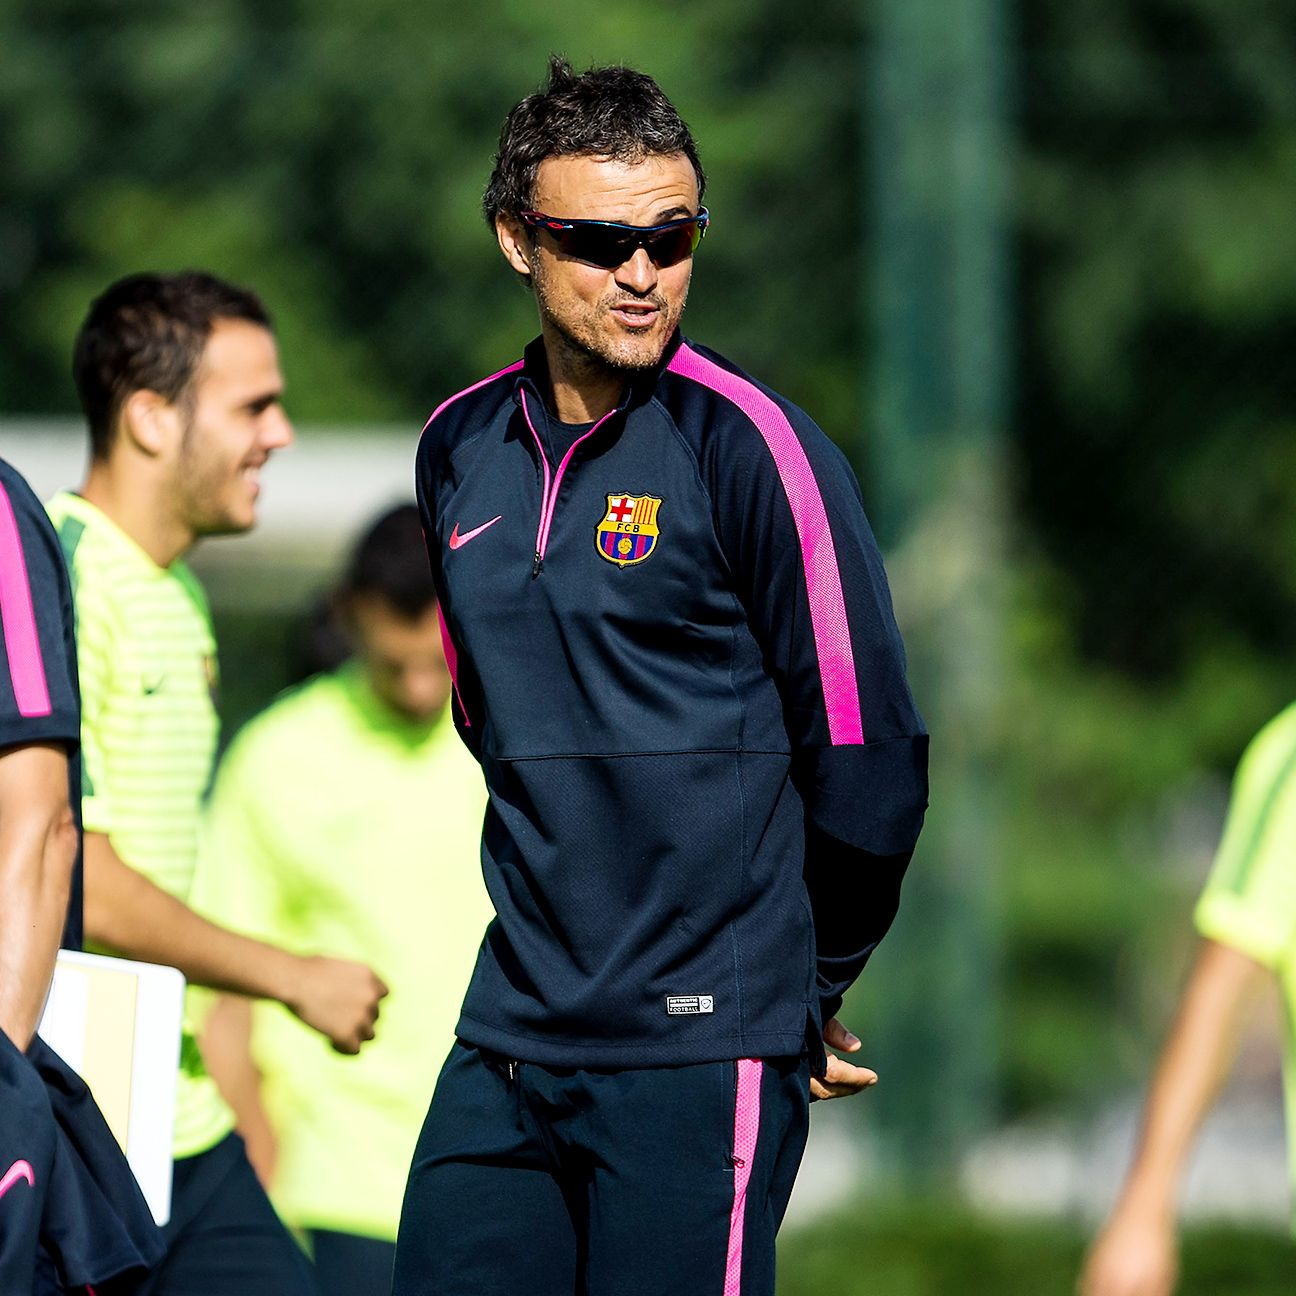 With the club riddled by so much change since Pep Guardiola's departure, it would be wise for fans to allow manager Luis Enrique the time to return Barcelona to their title-winning ways.